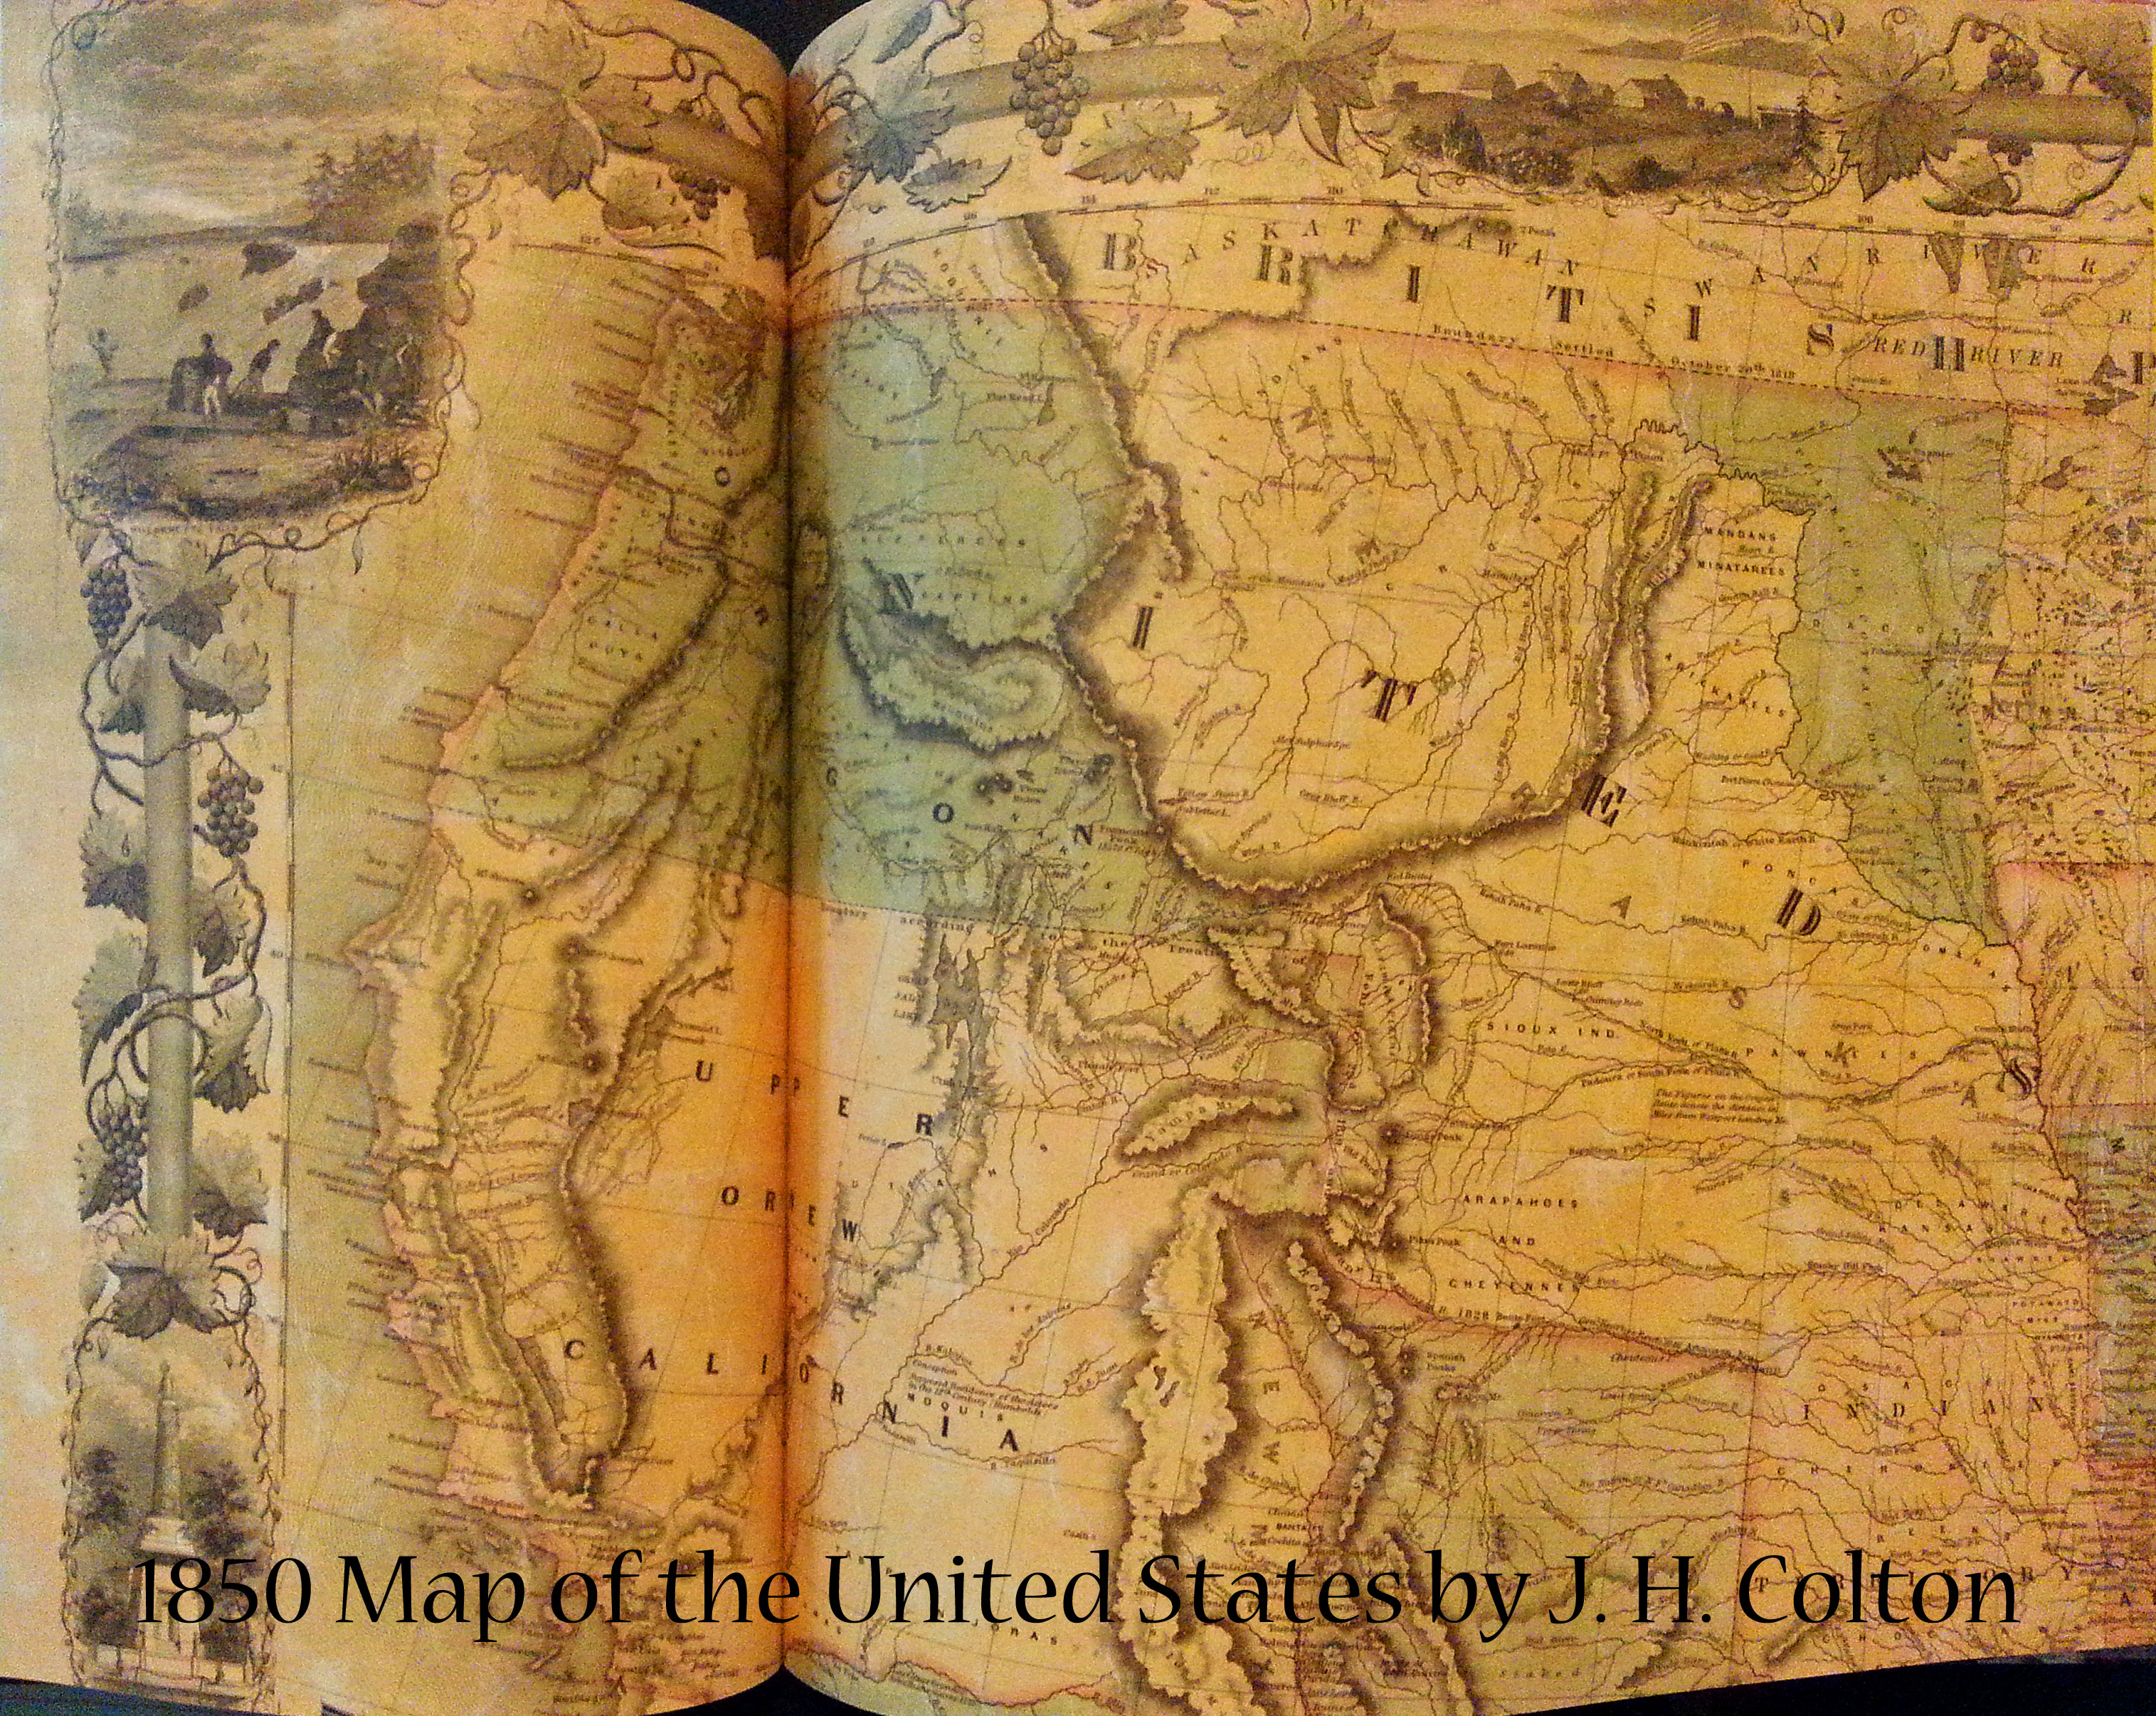 1850 Map of the United States by J H Colton | Book Addicts